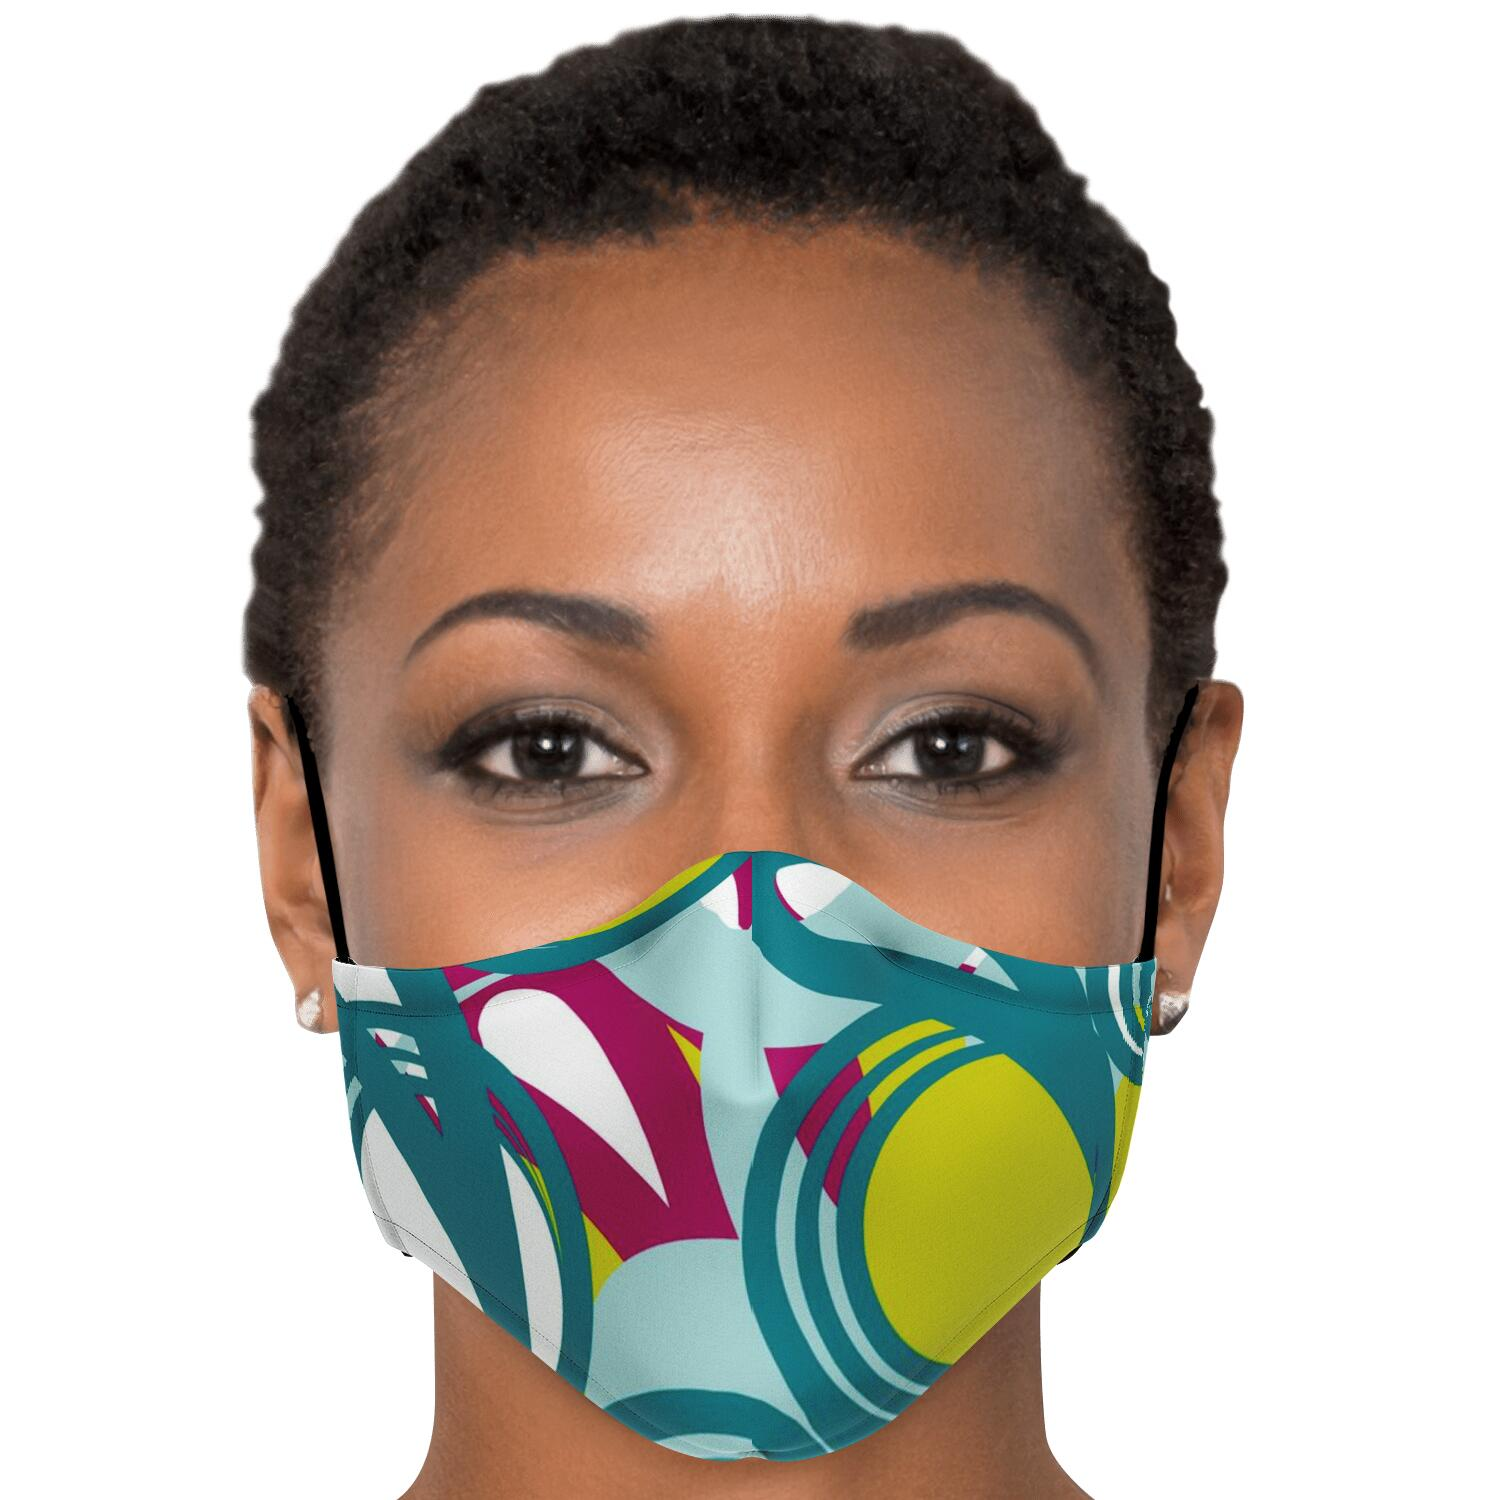 Colorful Face Mask w/ inside filter pocket and adjustable ear straps